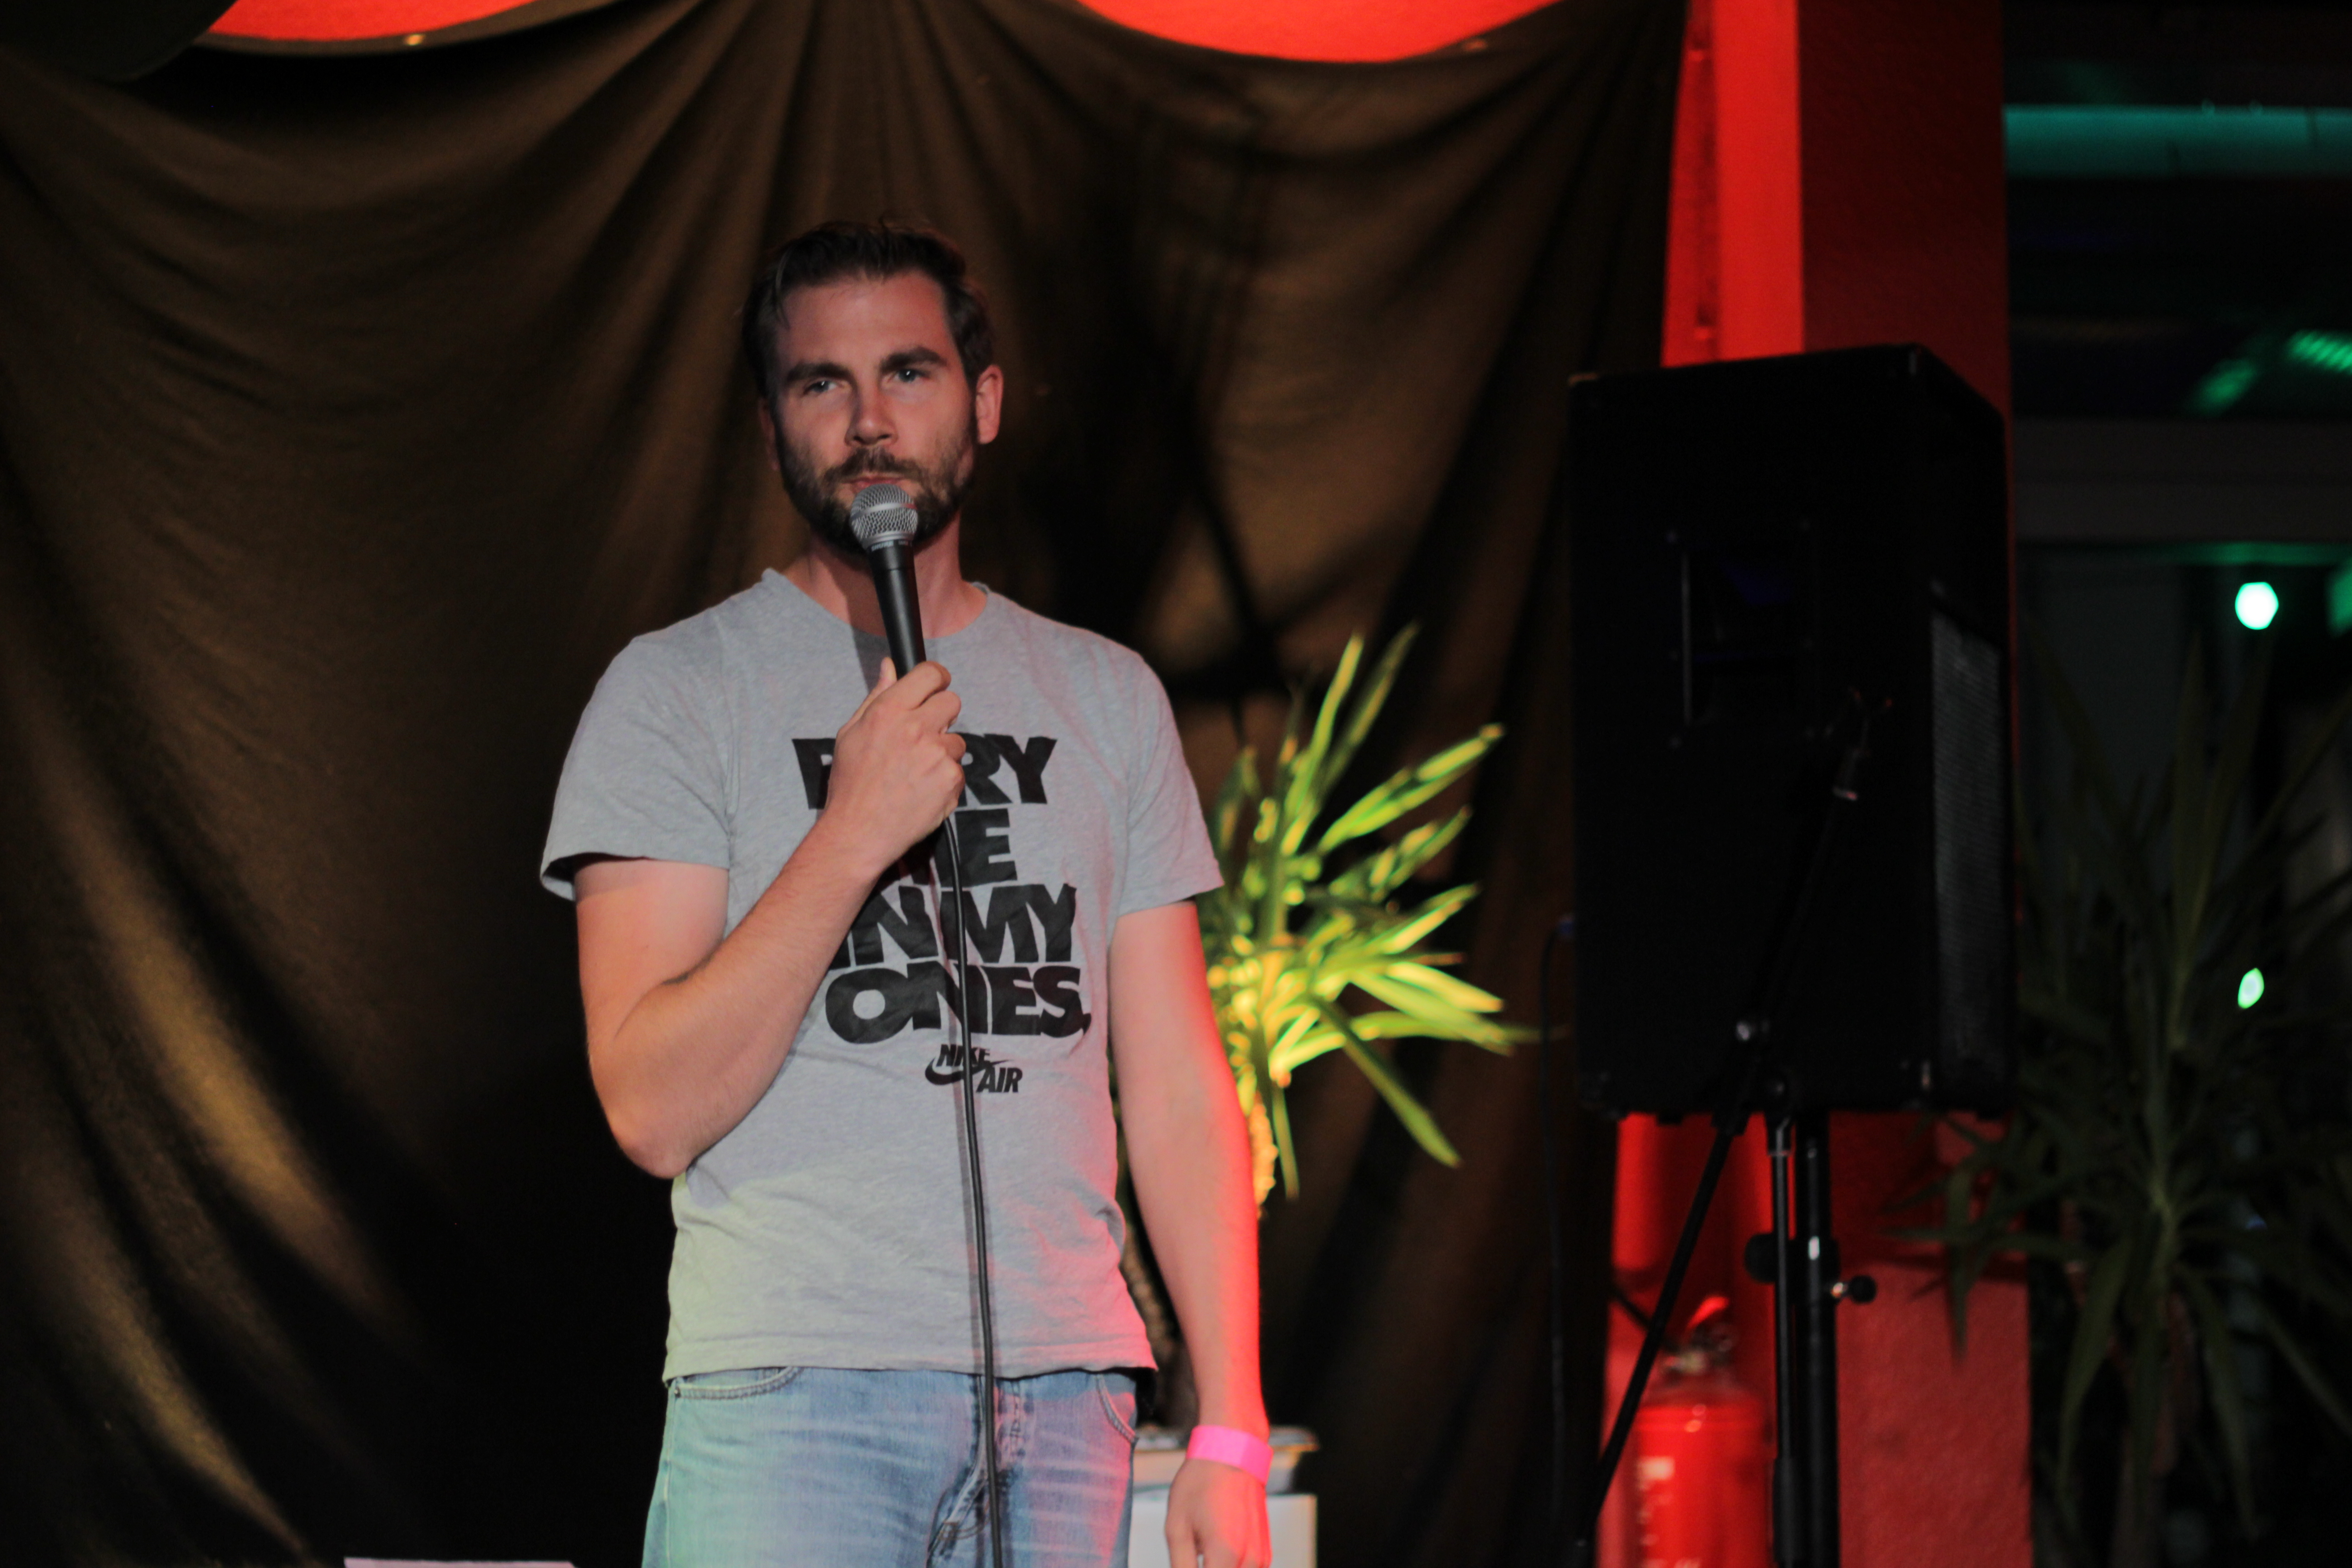 Jens Wienand Comedy Stand Up BK